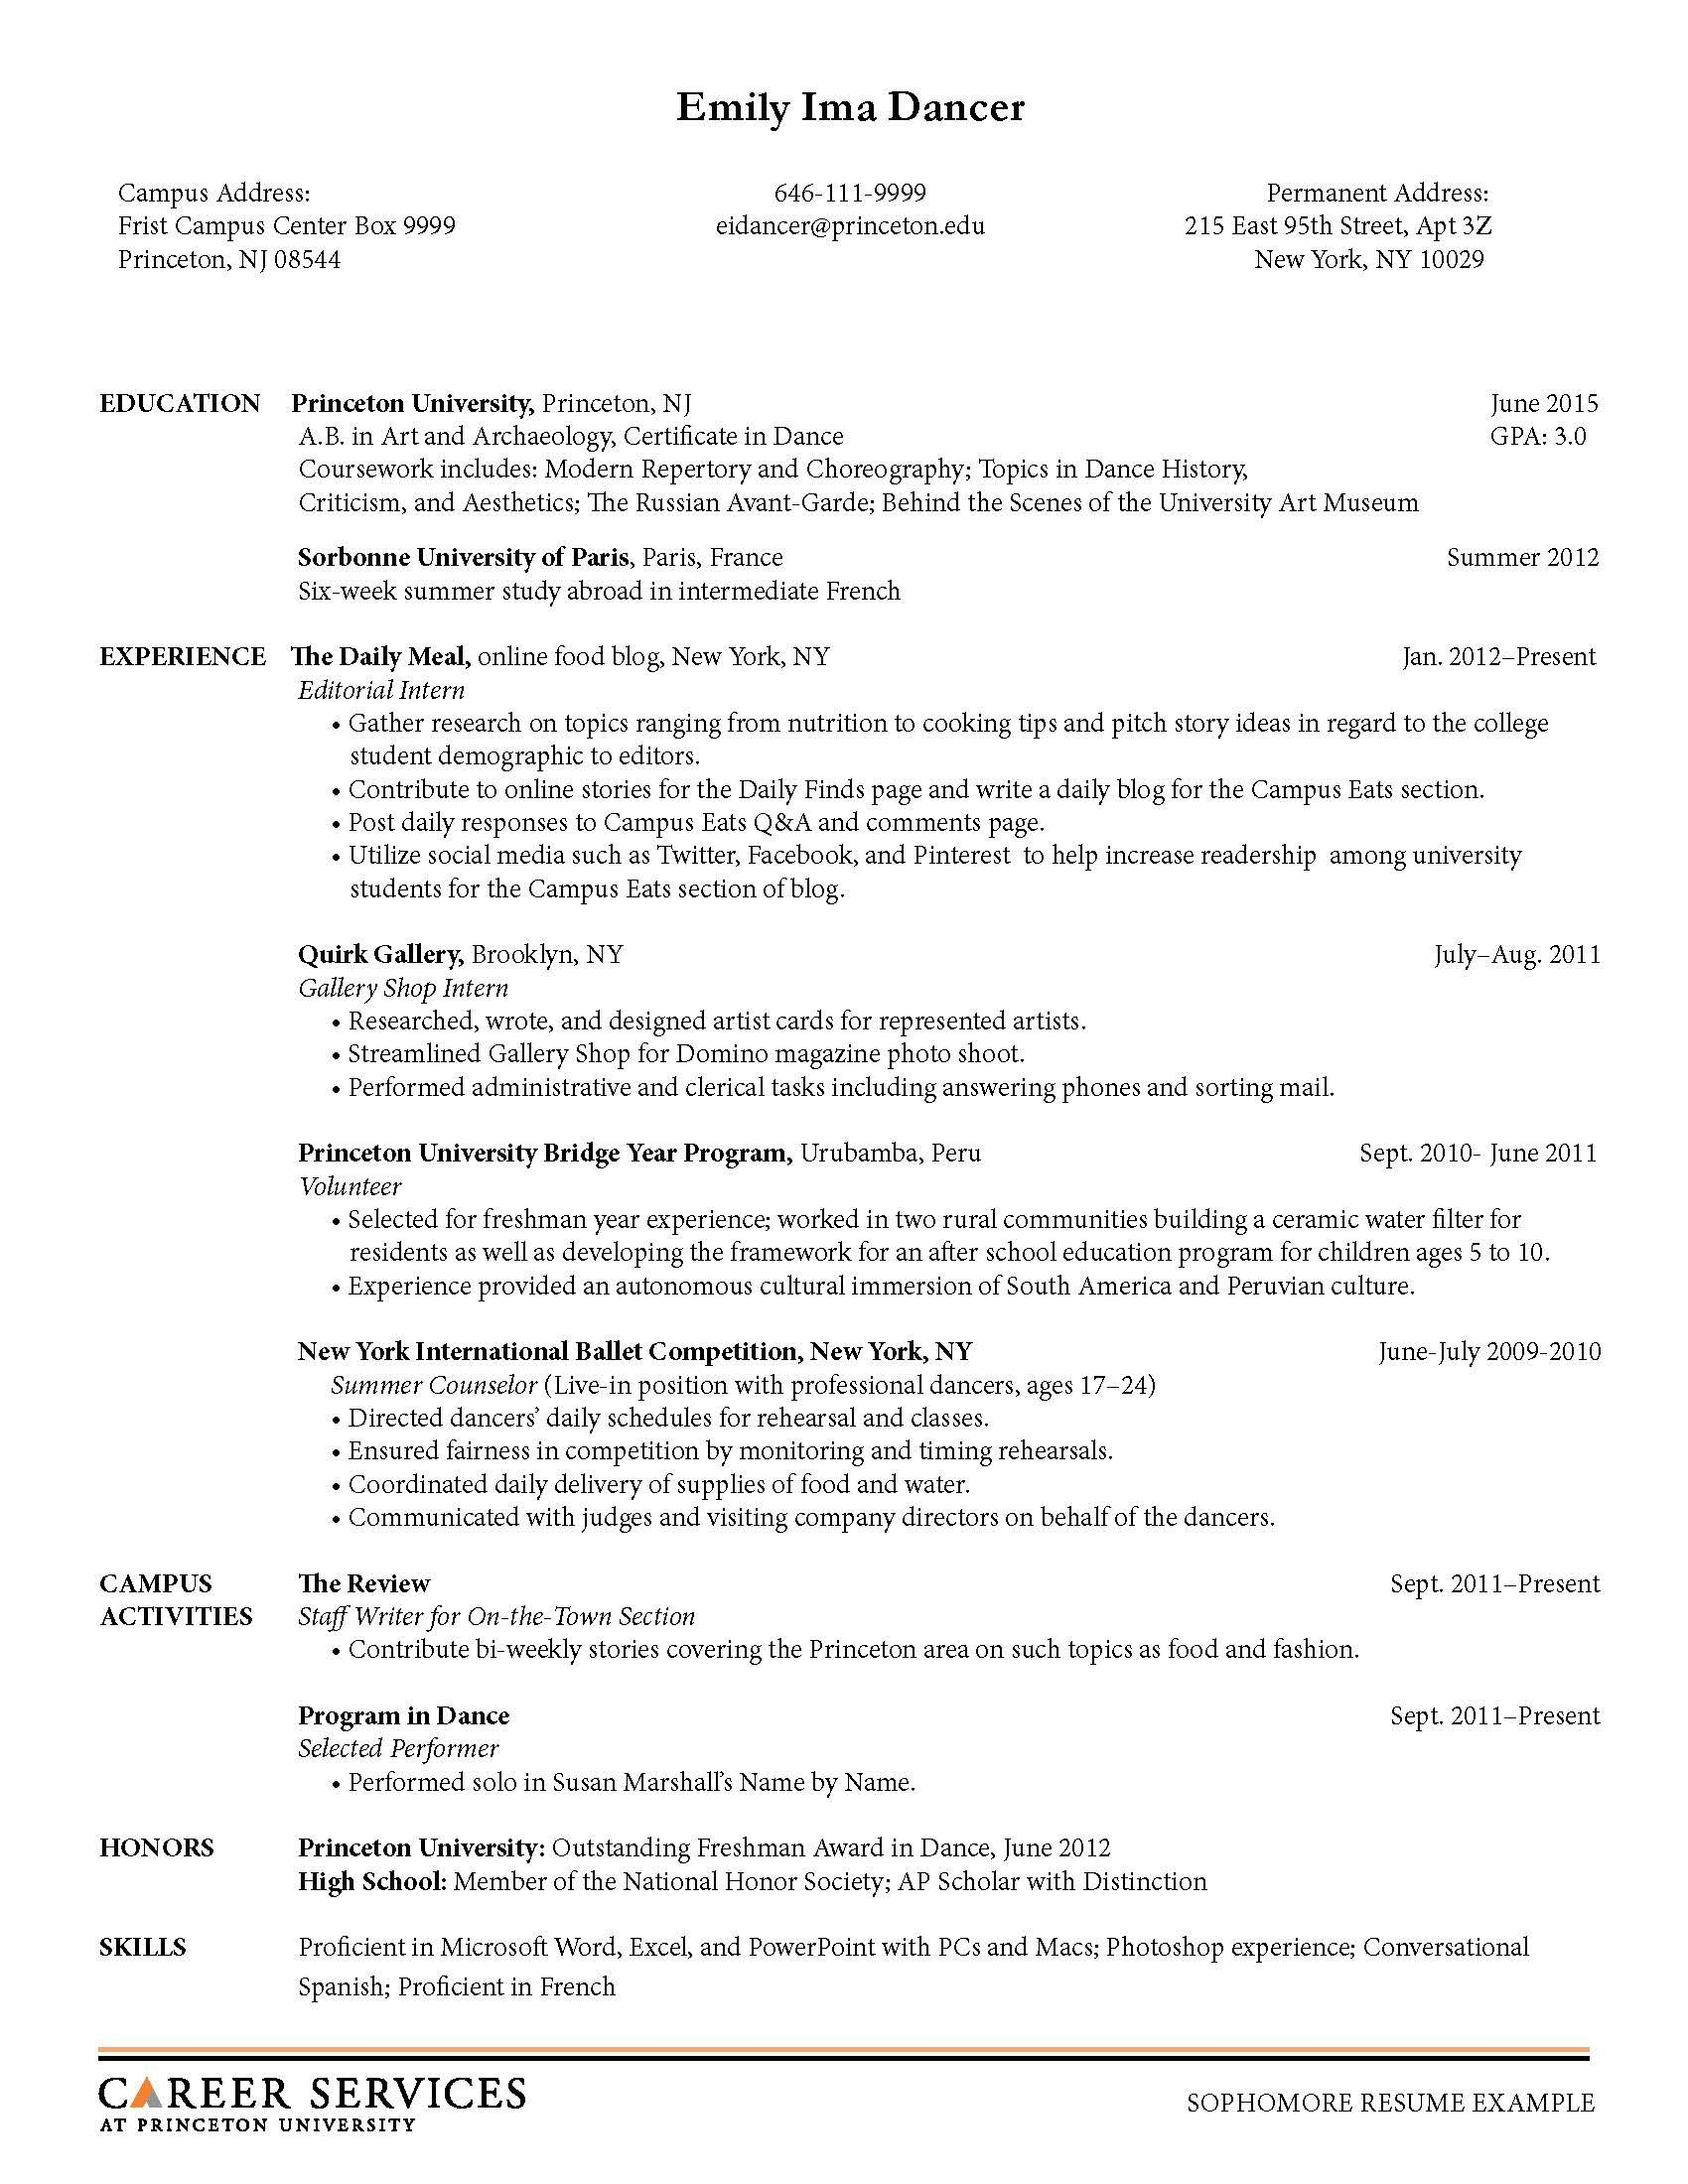 Picnictoimpeachus  Remarkable Sample Resume Resume And Career On Pinterest With Heavenly Electrician Apprentice Resume Besides Best Sales Resume Furthermore Build Resume Online For Free With Appealing Typical Resume Also Type A Resume In Addition Resume For Graphic Designer And Medical Support Assistant Resume As Well As Resume Word Document Additionally Email Resume Template From Pinterestcom With Picnictoimpeachus  Heavenly Sample Resume Resume And Career On Pinterest With Appealing Electrician Apprentice Resume Besides Best Sales Resume Furthermore Build Resume Online For Free And Remarkable Typical Resume Also Type A Resume In Addition Resume For Graphic Designer From Pinterestcom